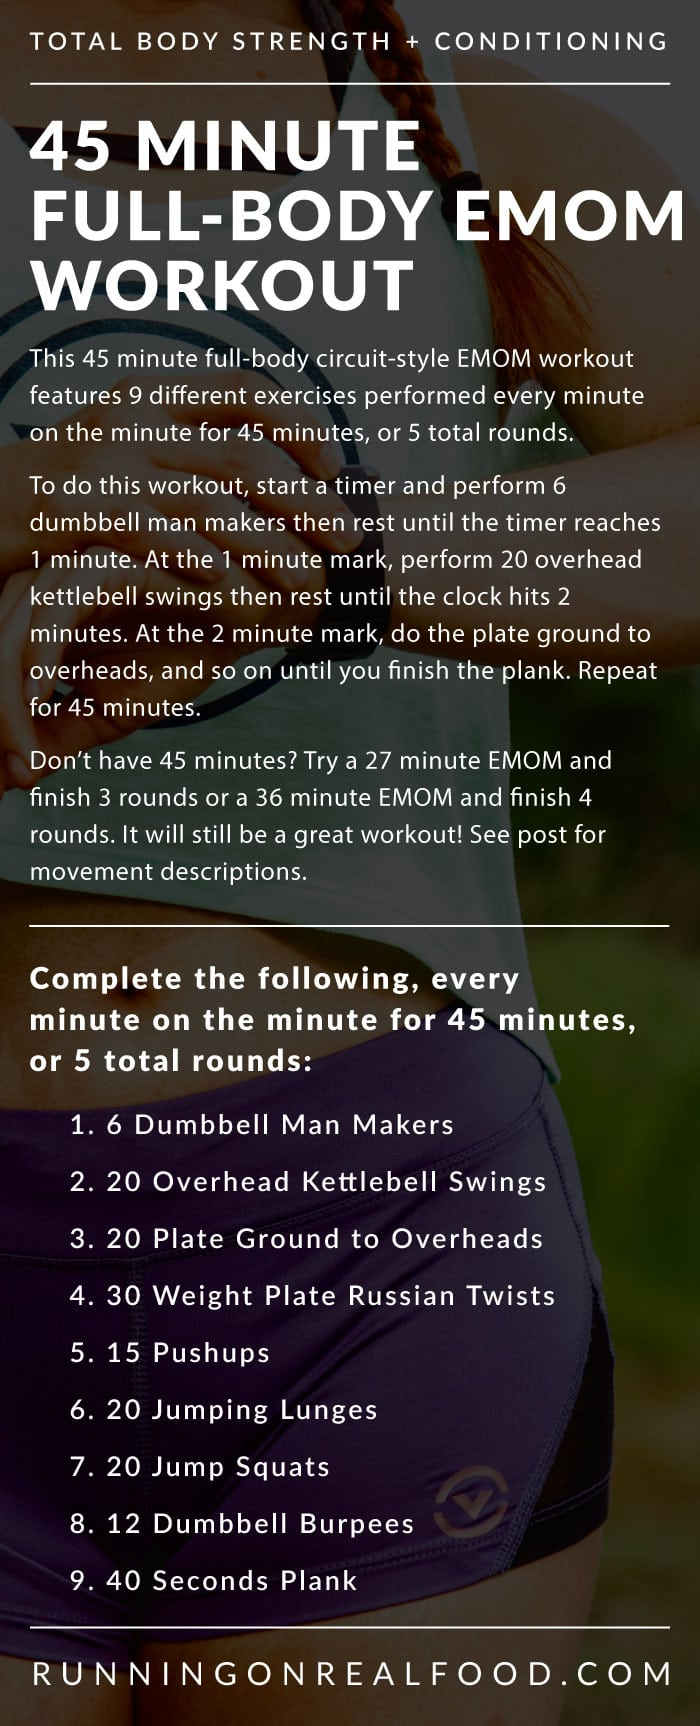 45 Minute EMOM Conditioning Workout for the Gym from Running on Real Food